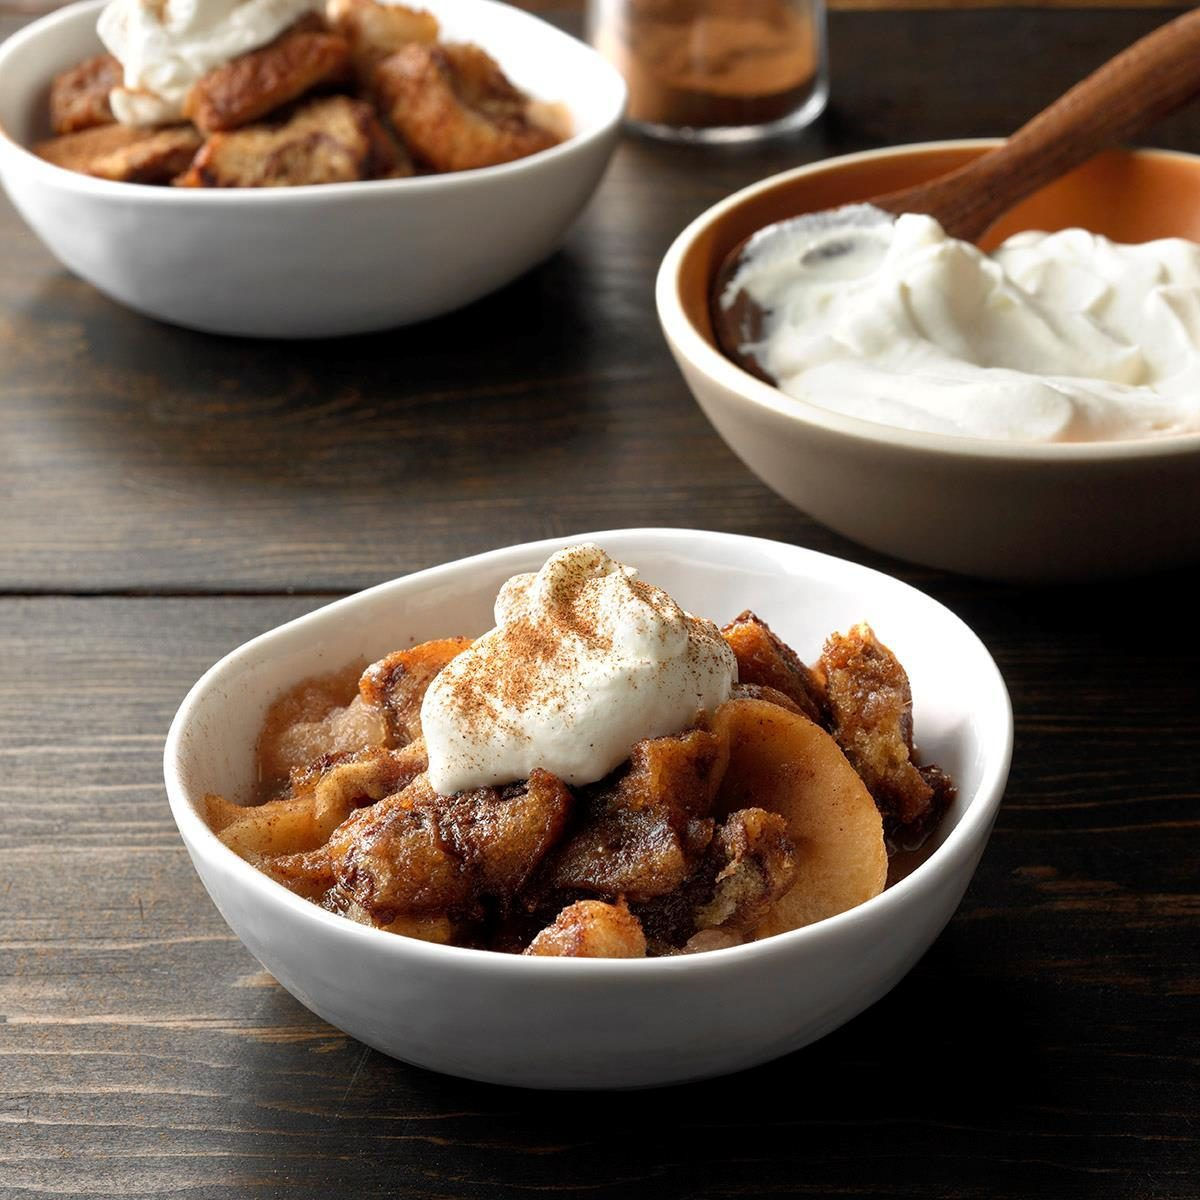 Day 5: Apple Betty with Almond Cream